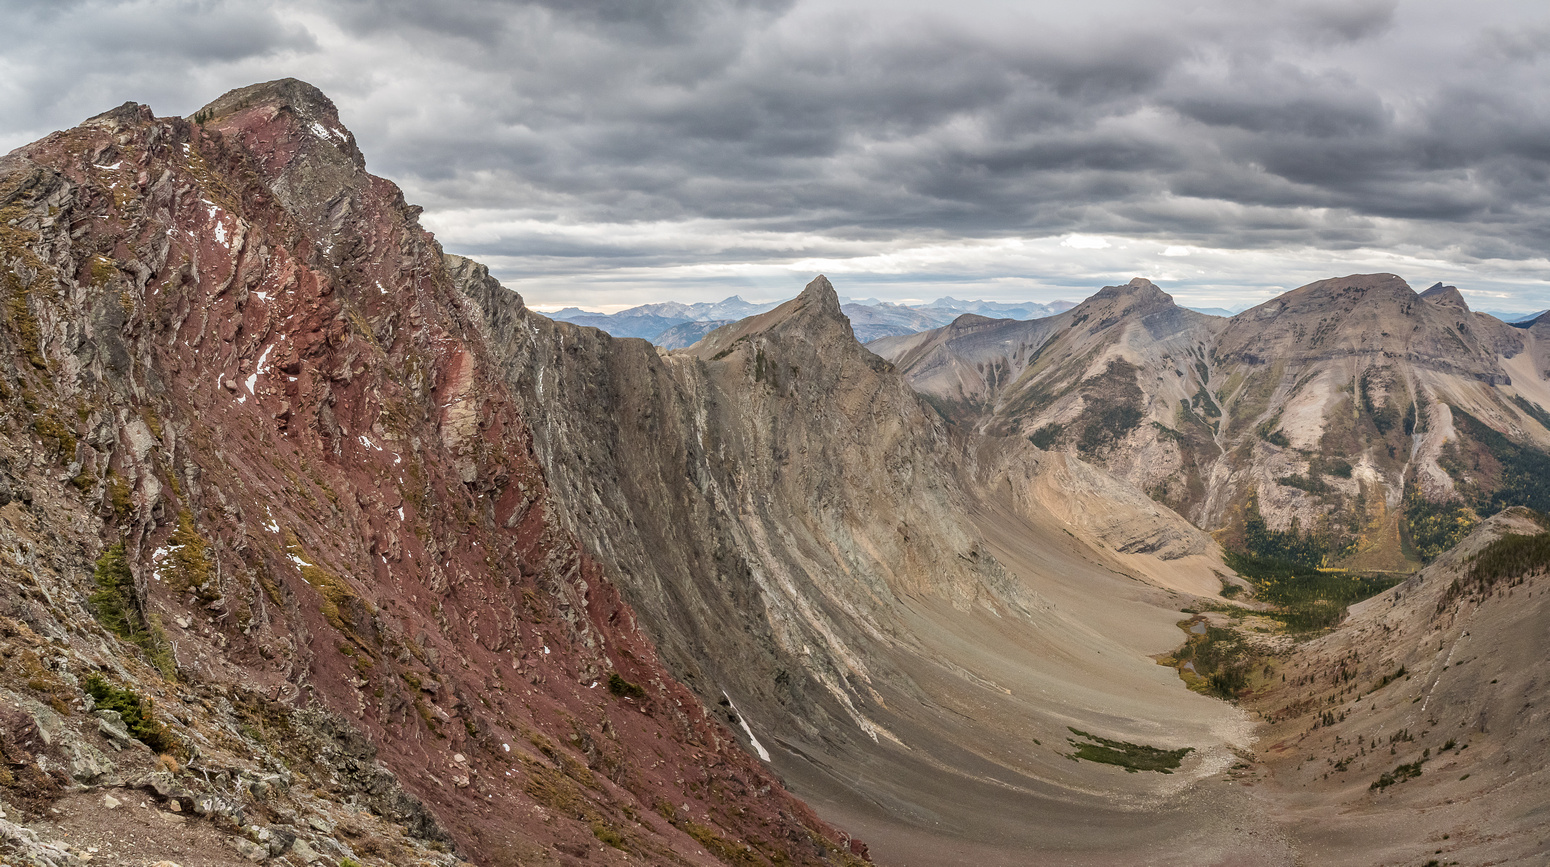 The two peaks of Red Argillite at left with Krowicki and Miles at right distance.